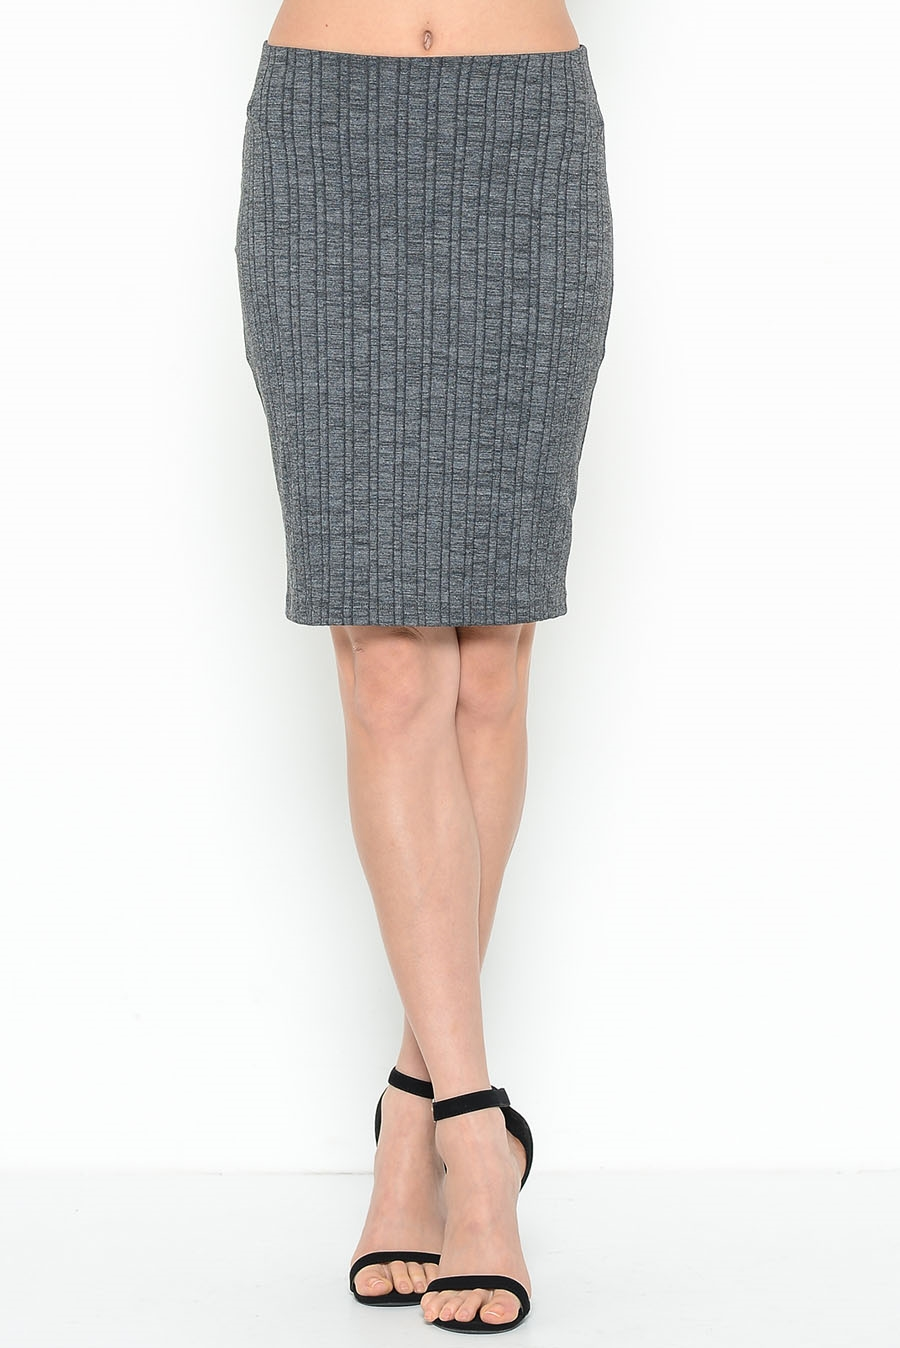 SLUB RIB HIGH WAIST SKIRT - orangeshine.com